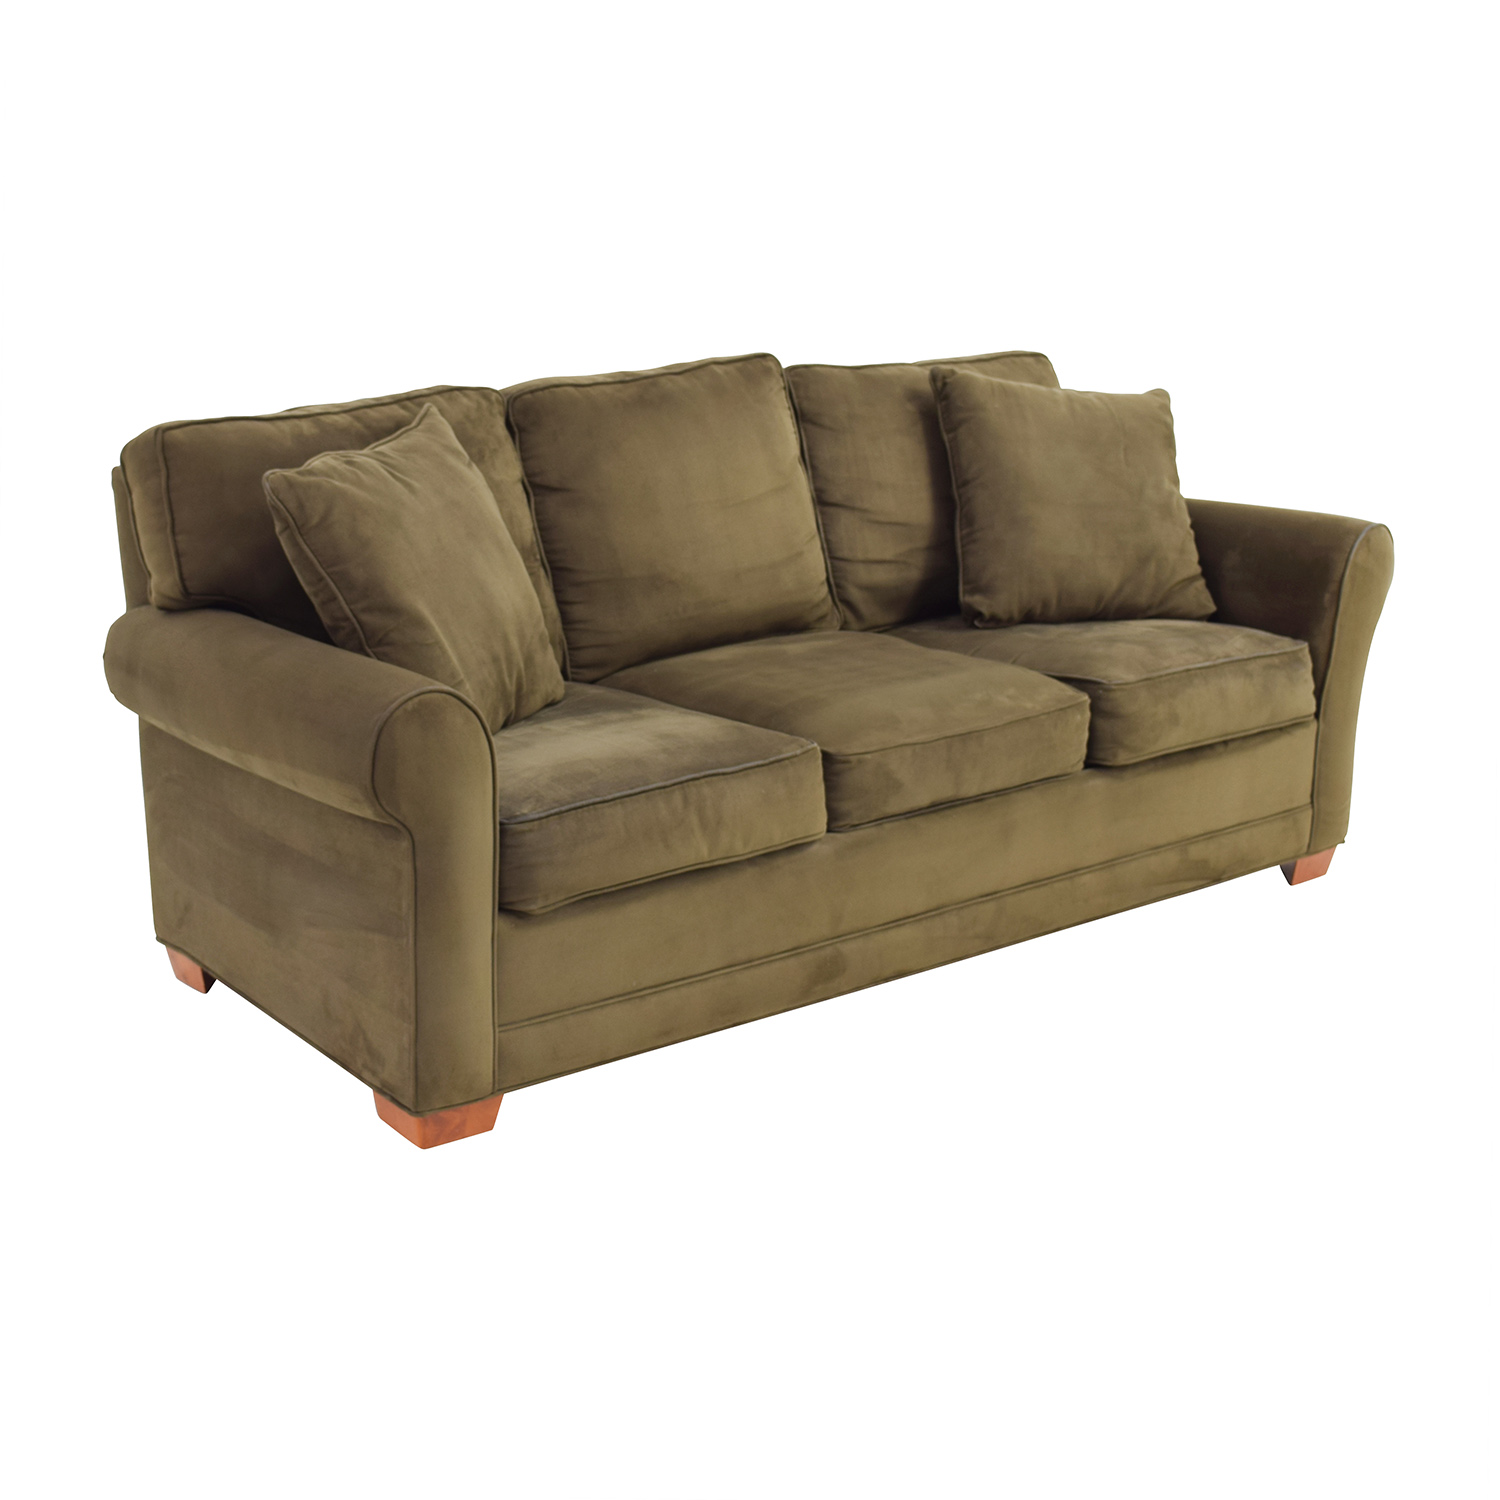 87 off raymour and flanigan raymour flanagan fresno brown microfiber sofa sofas Brown microfiber couch and loveseat